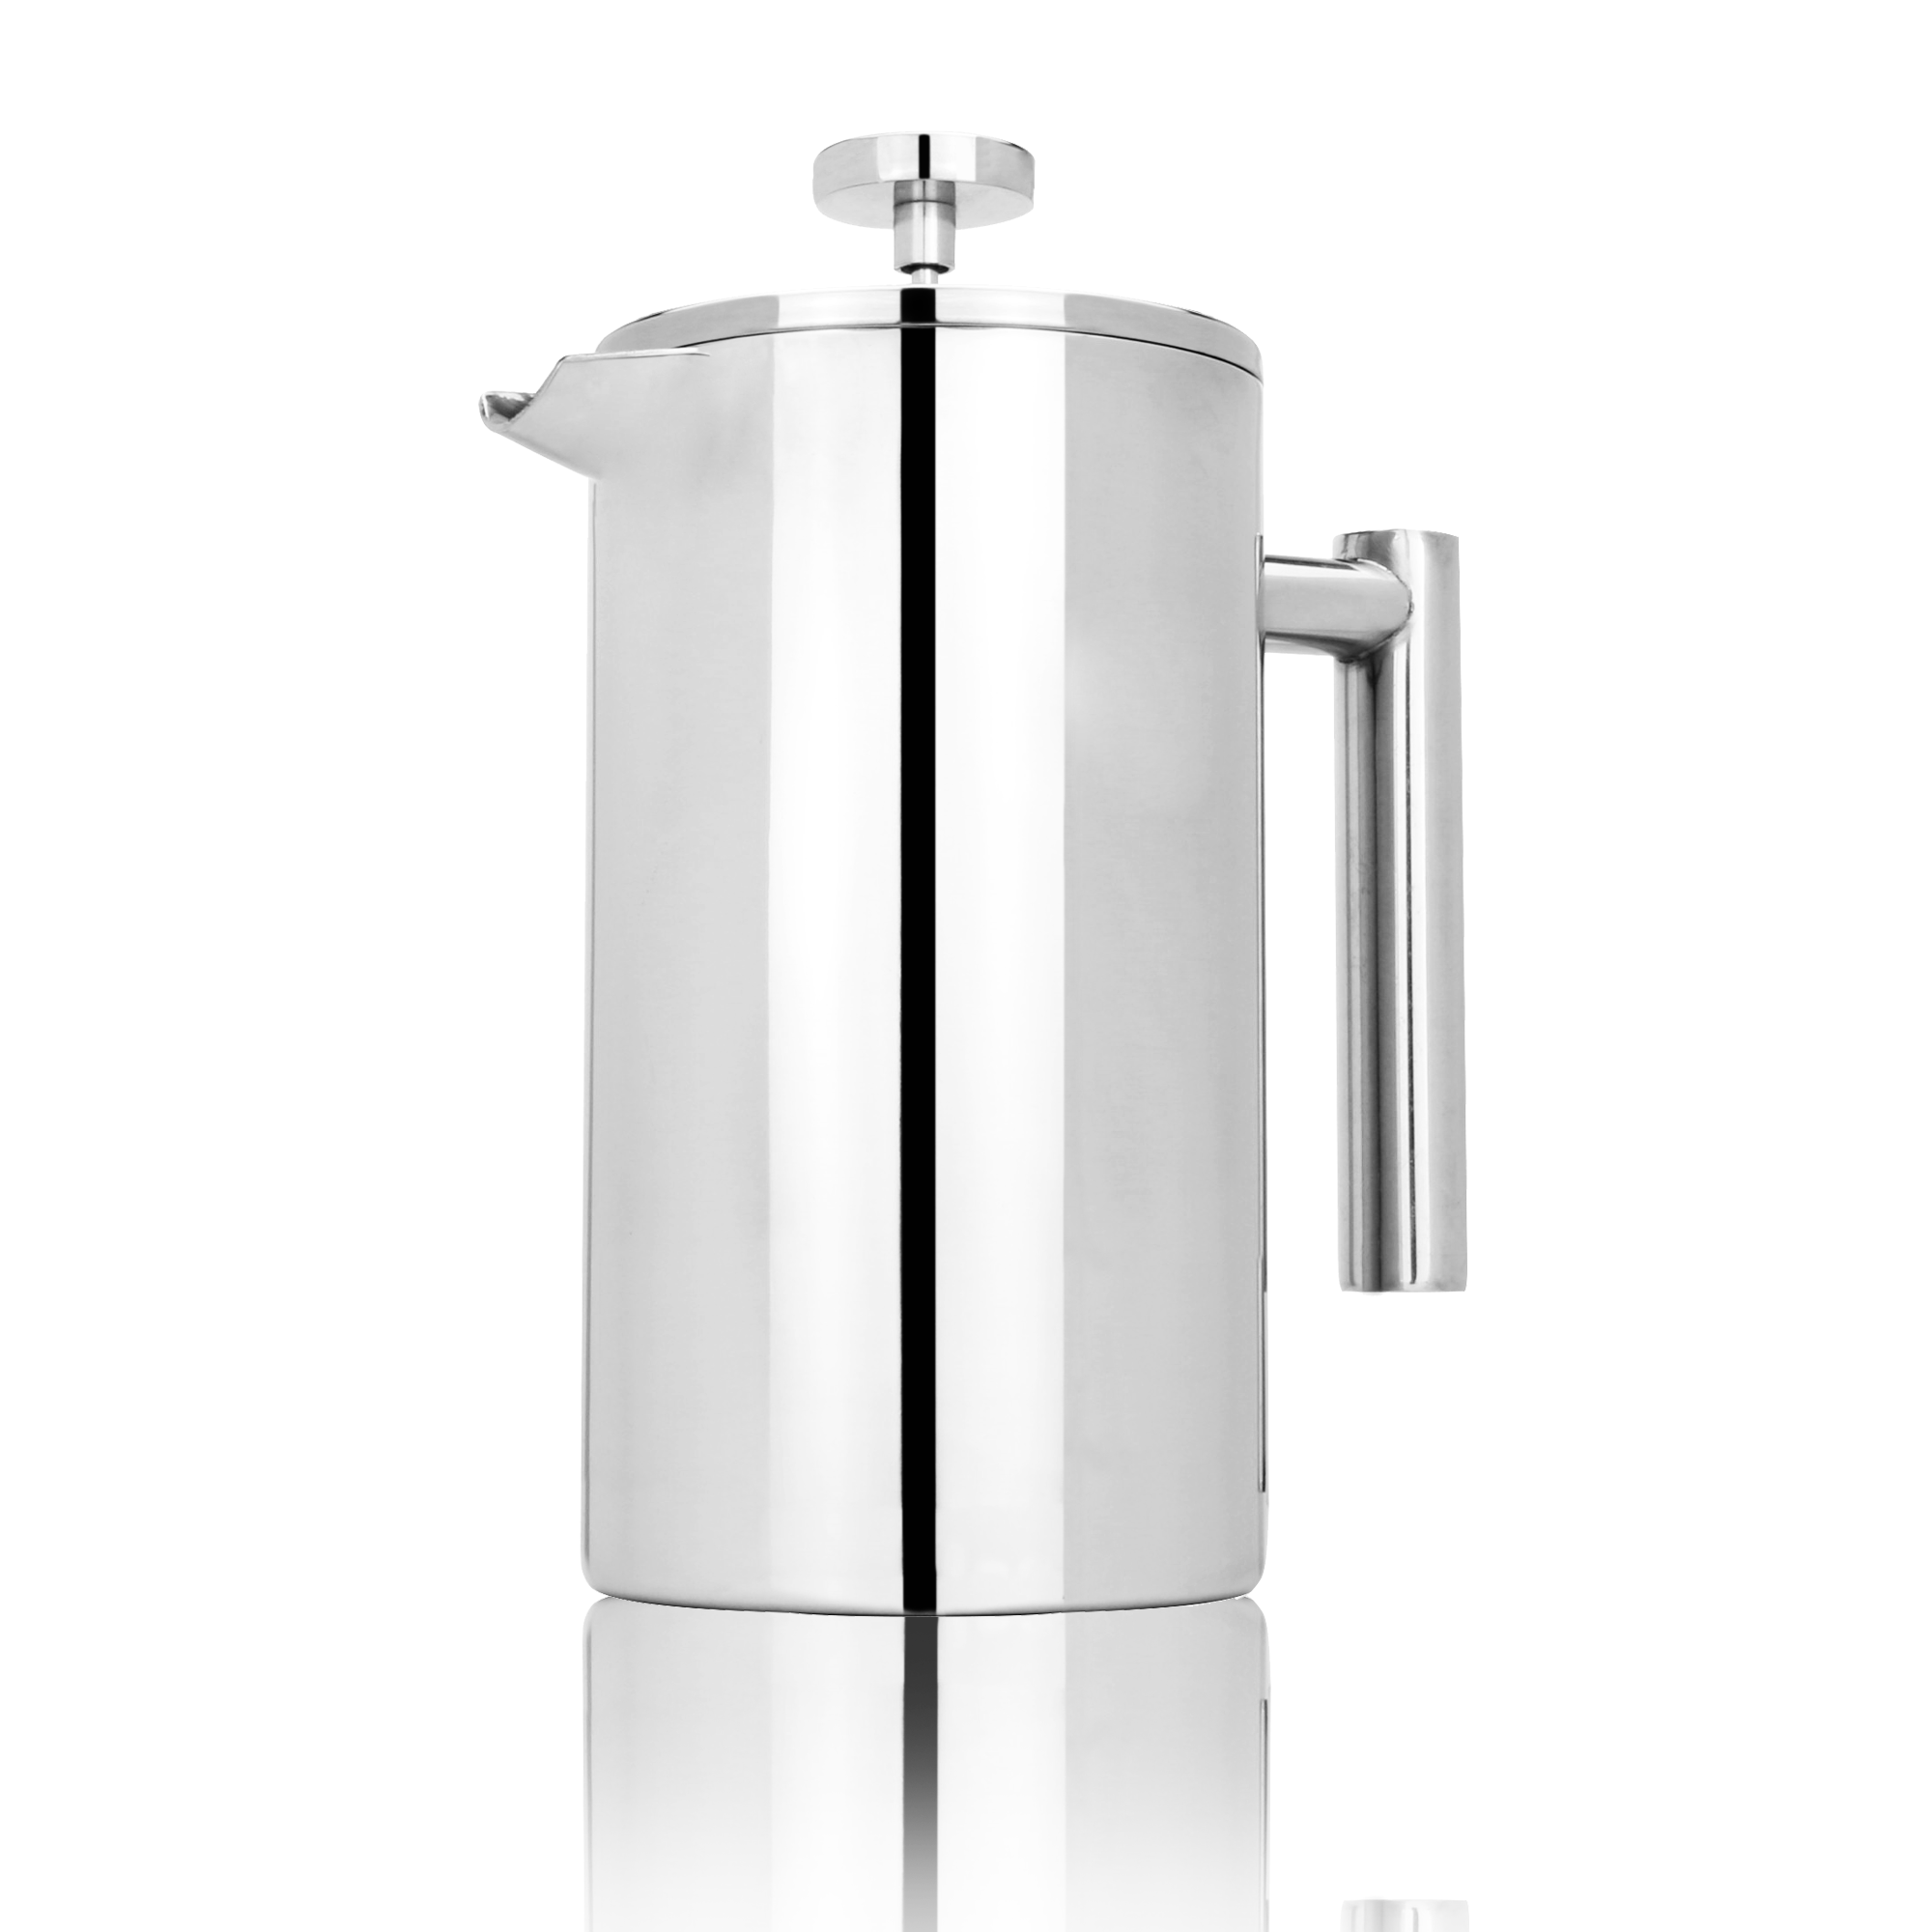 French-Press-Cafetiere-Steel-Coffee-Maker-FREE-Filters-amp-Spoons-M-amp-W miniatuur 13